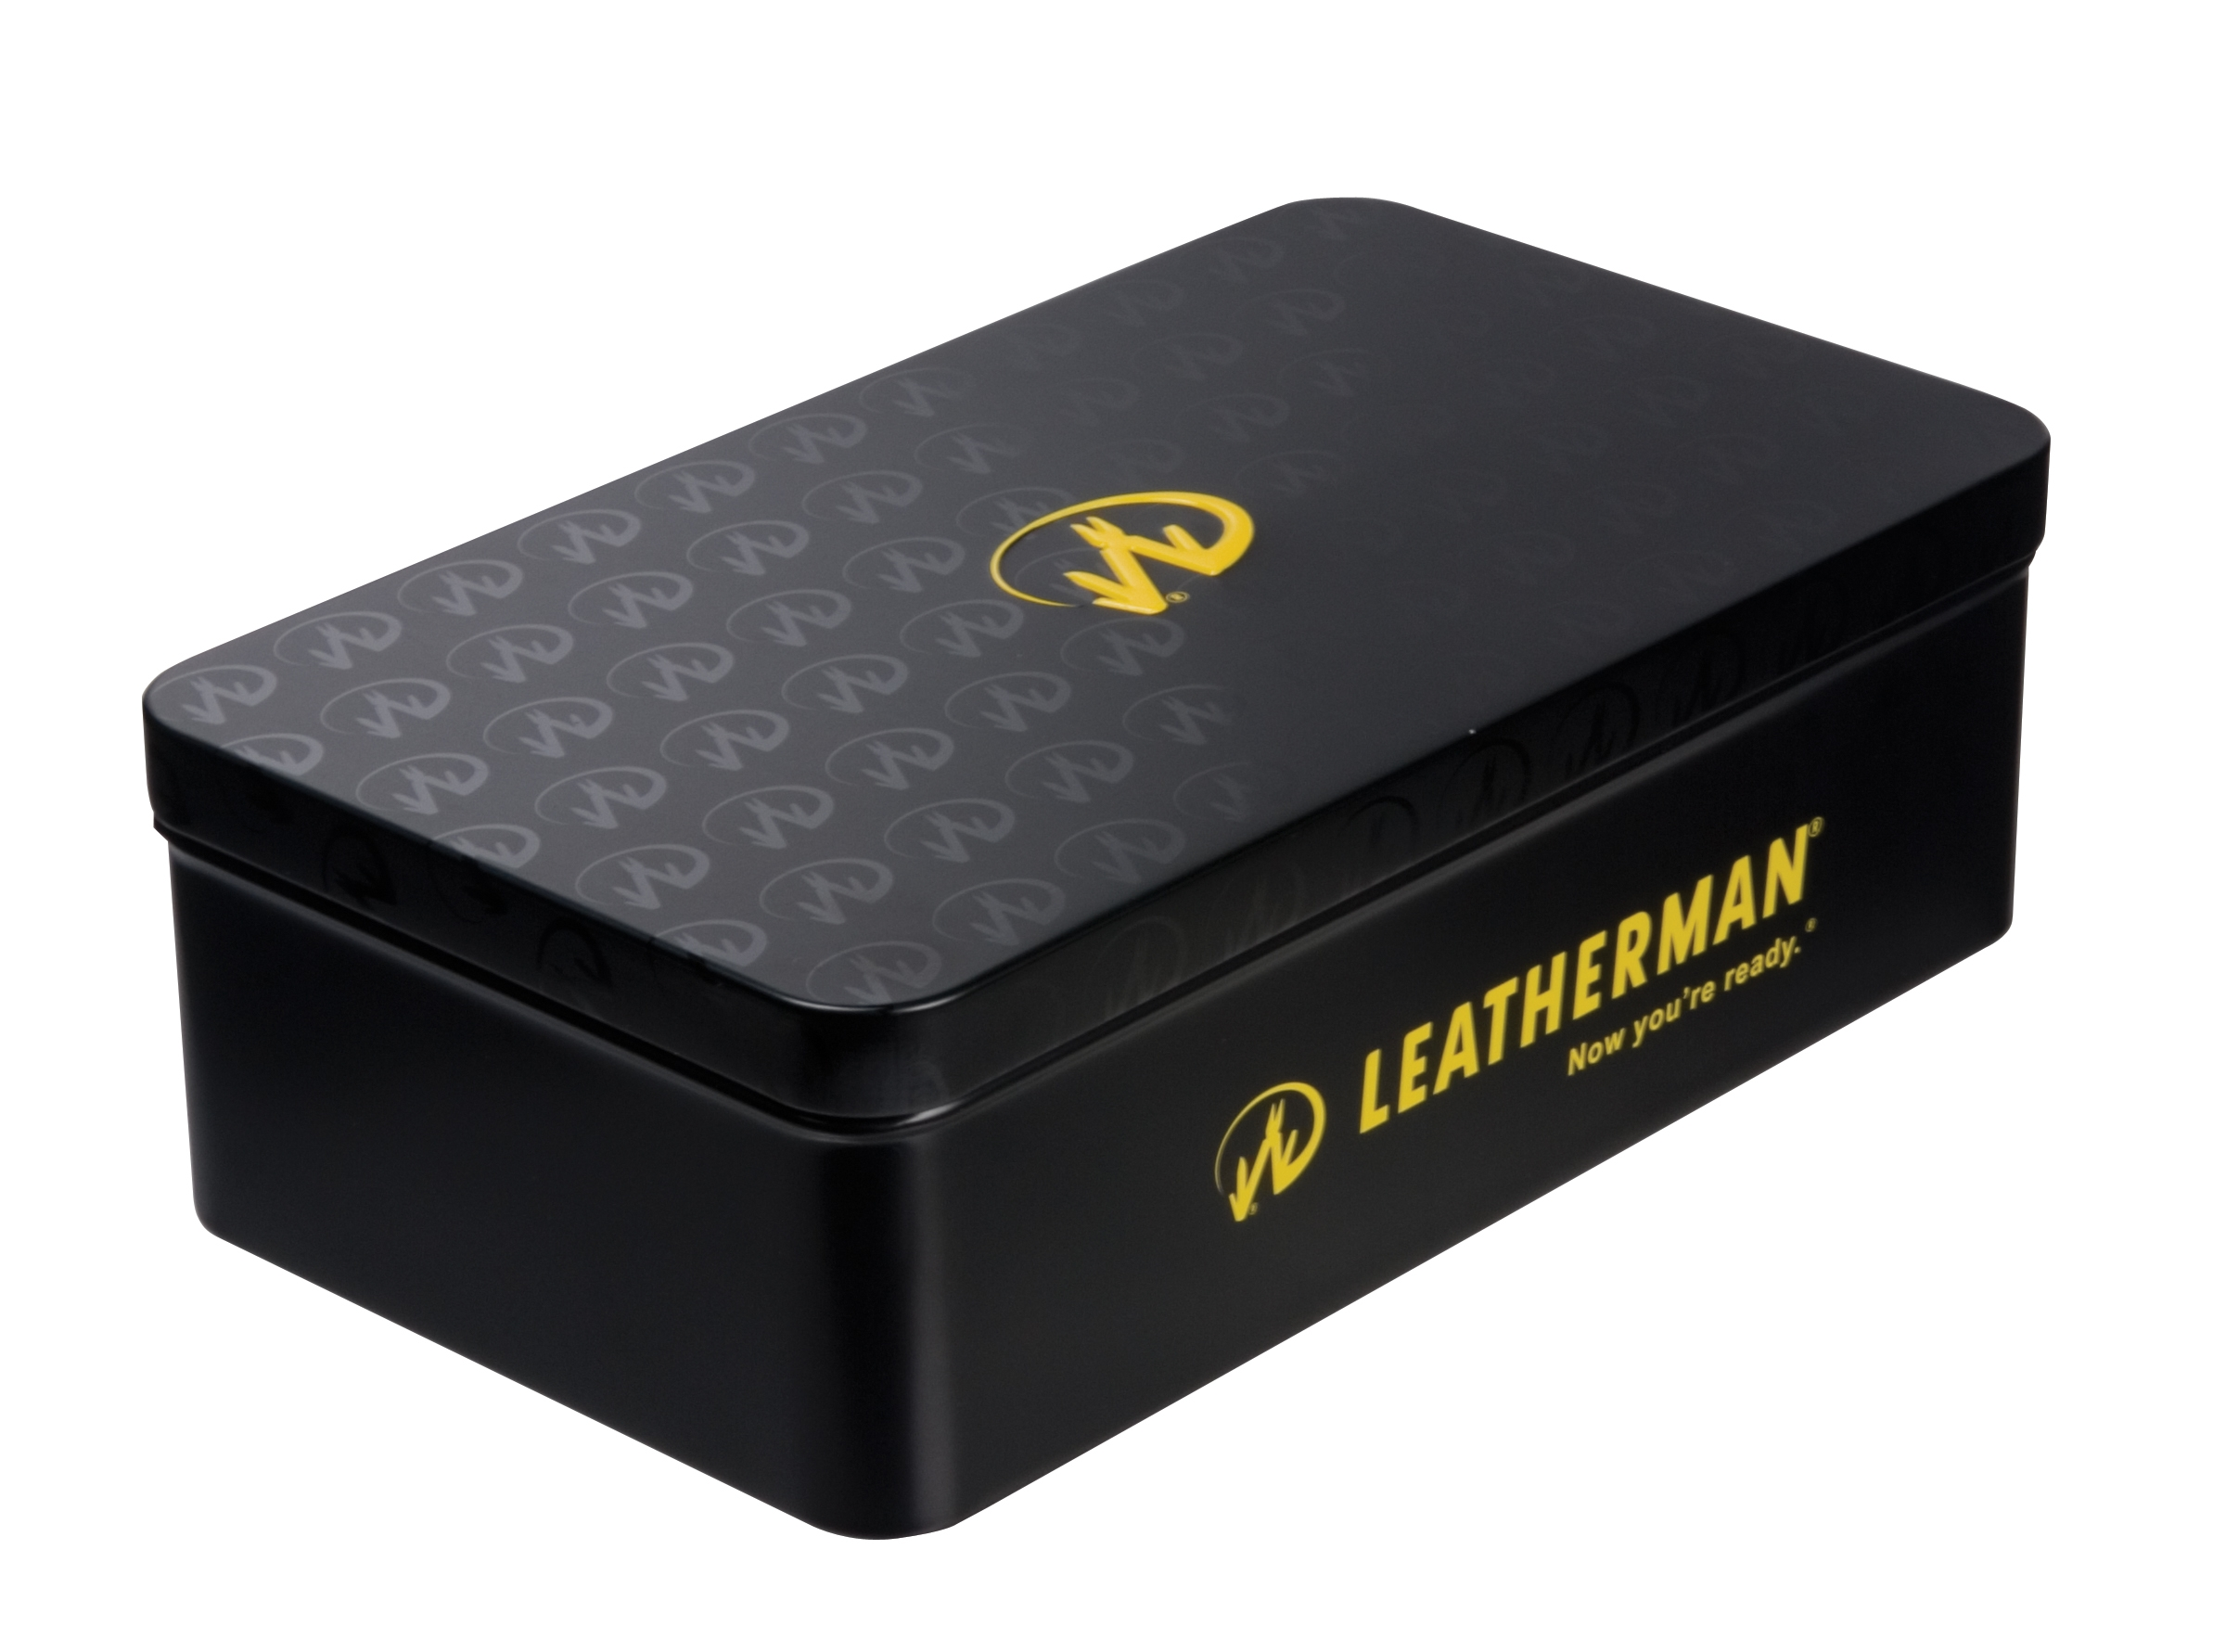 Leatherman Metallgeschenkbox